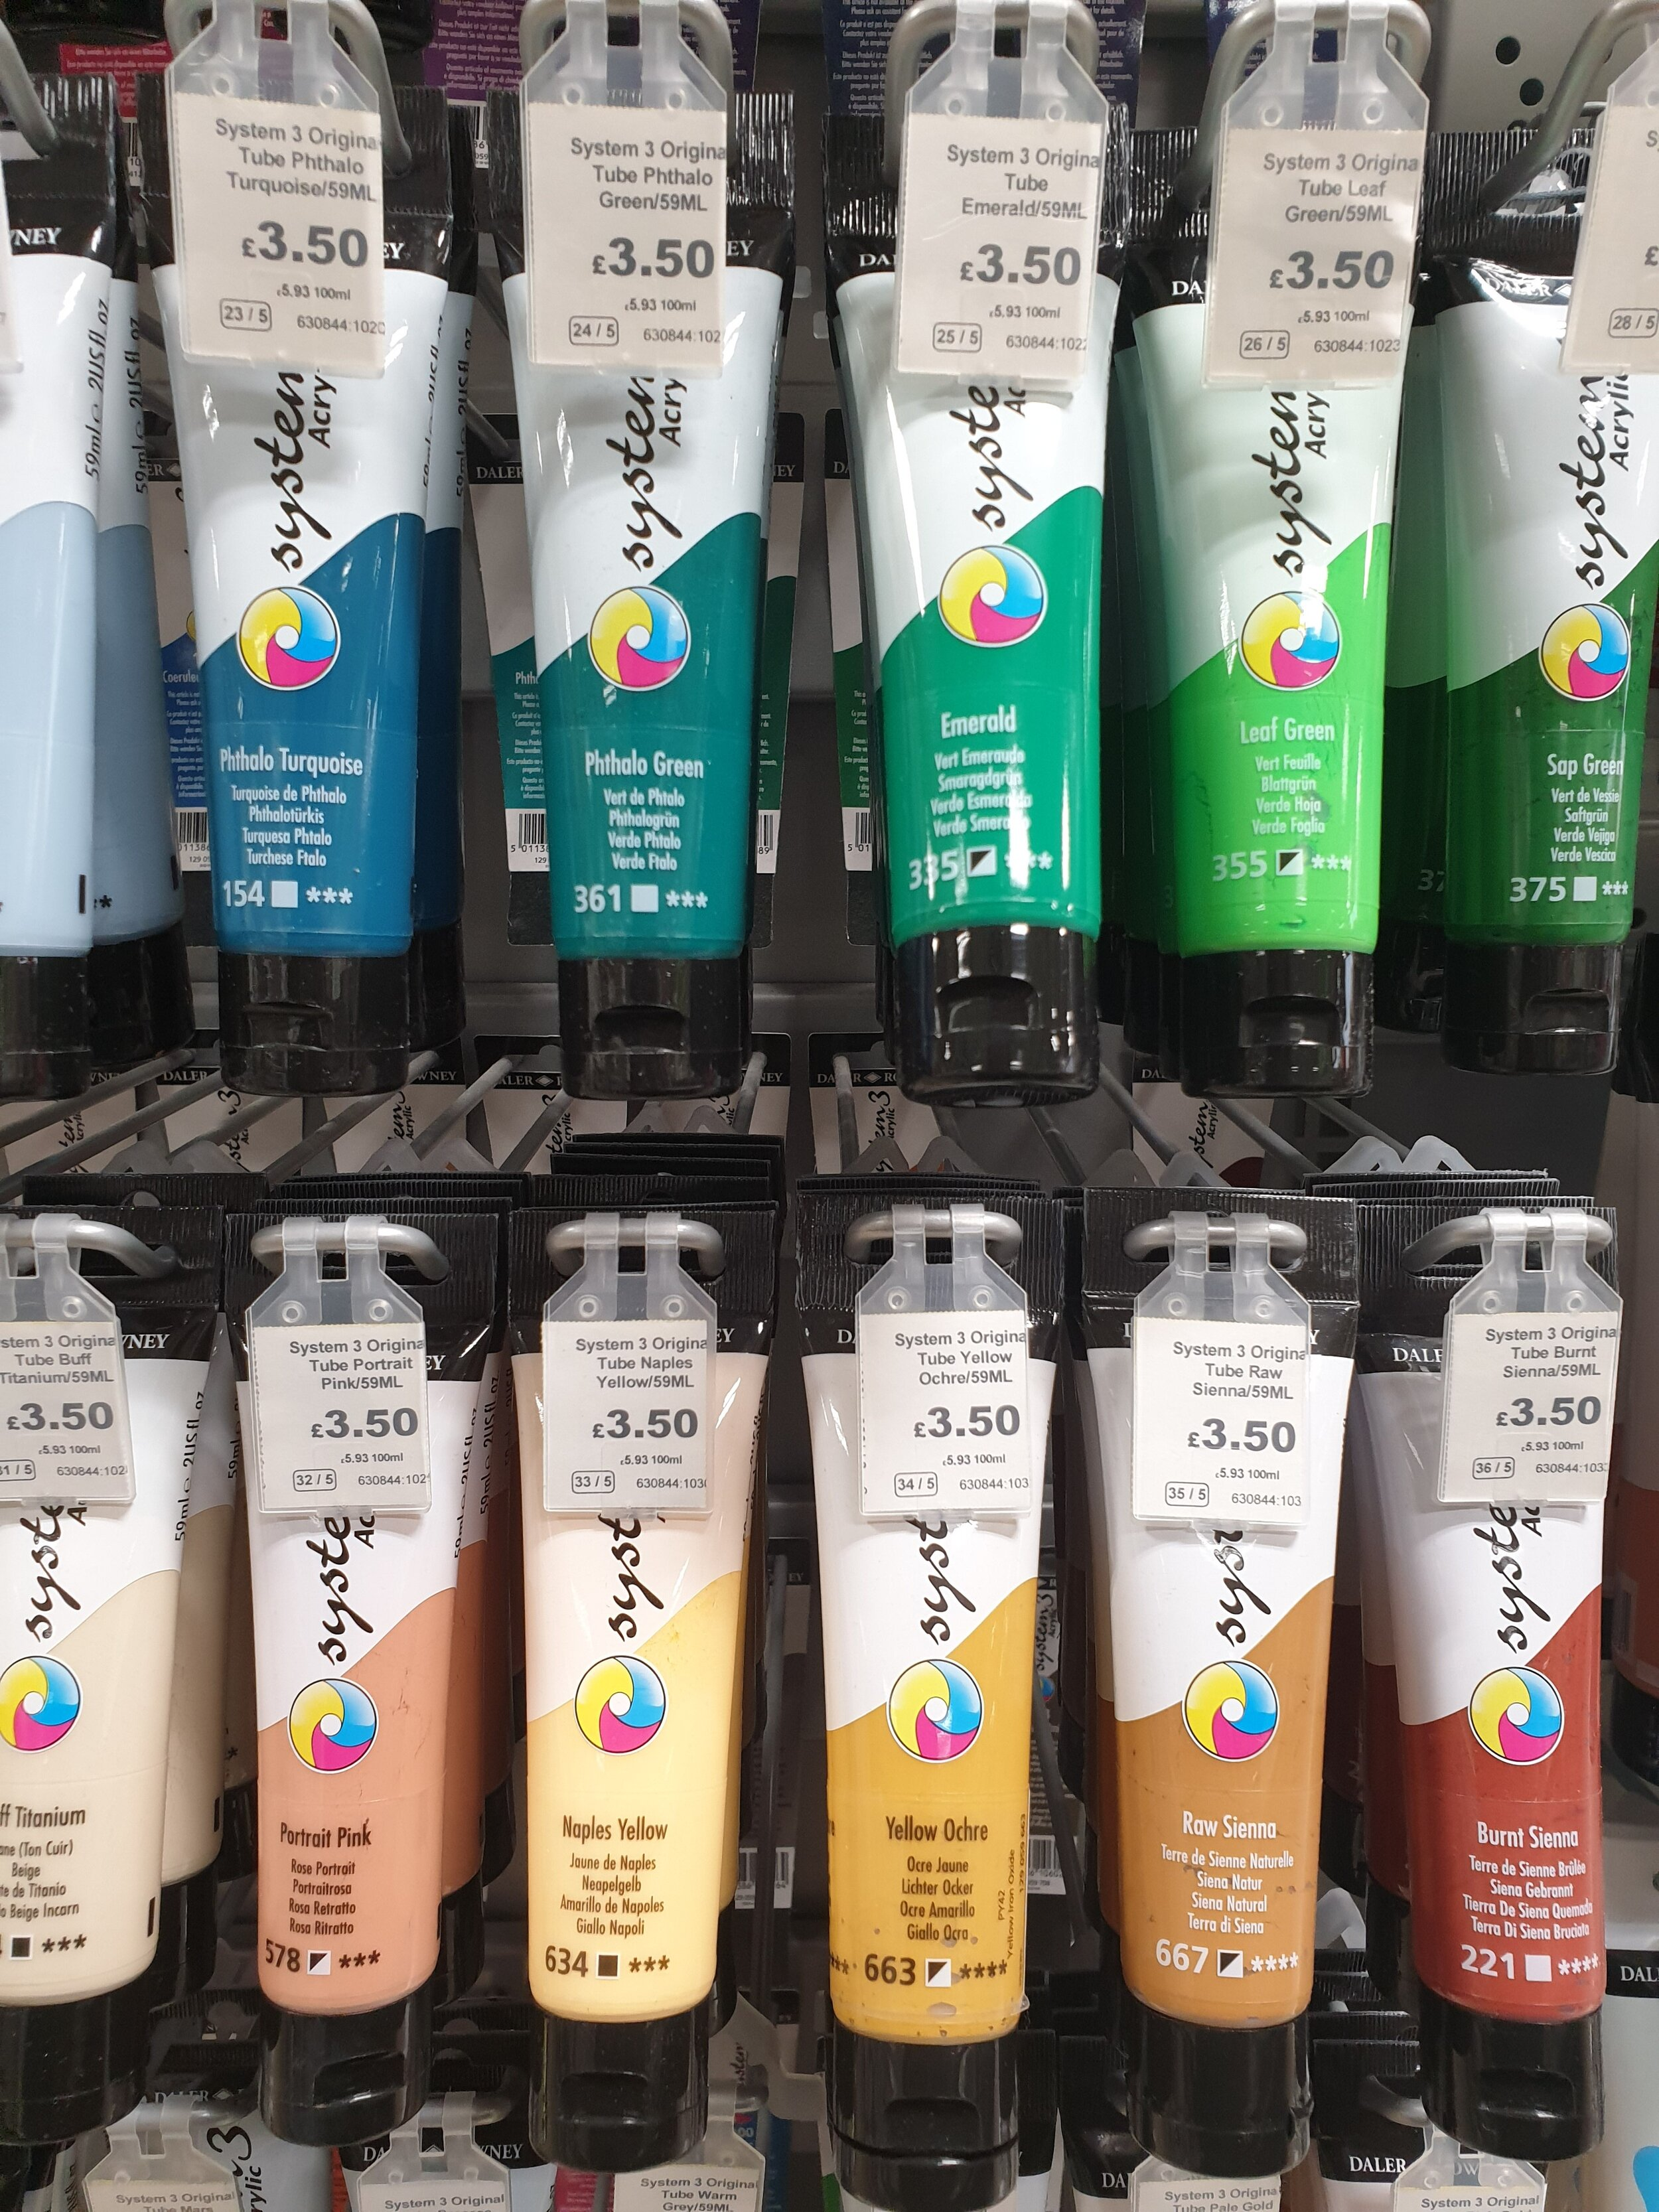 Daler Rowney system 3 offer a great range of pre-mixed tones with great pigment, they are definitely my favourite mid-range brand!